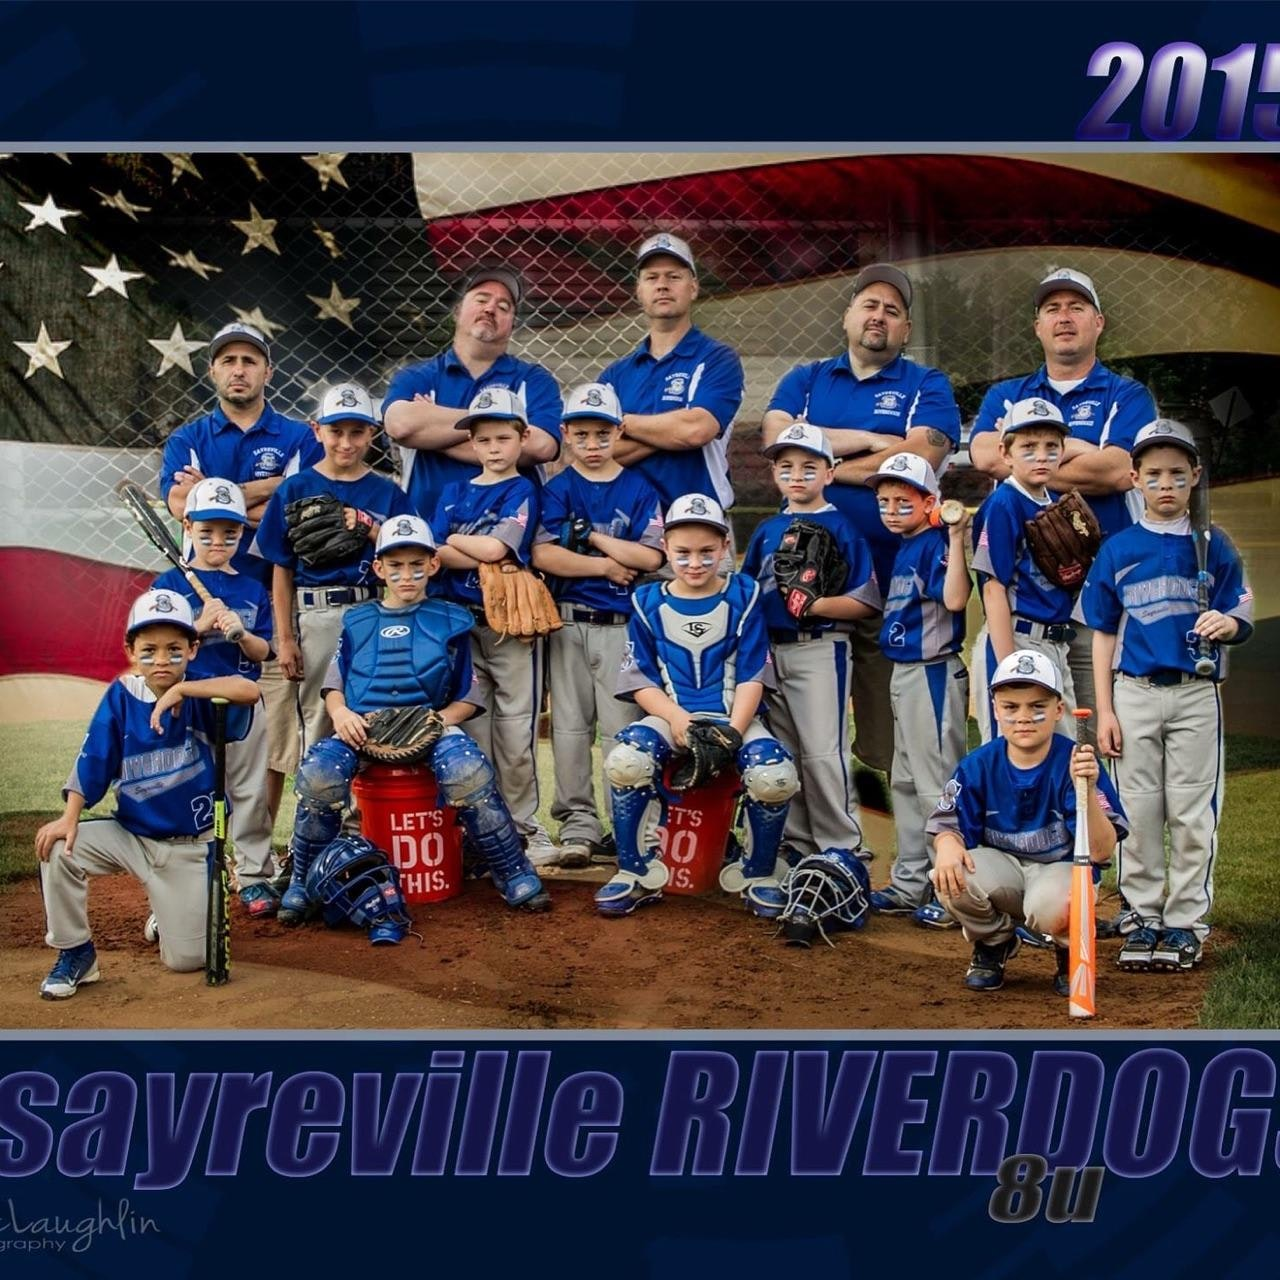 Sayreville Riverdogs Blue 10U